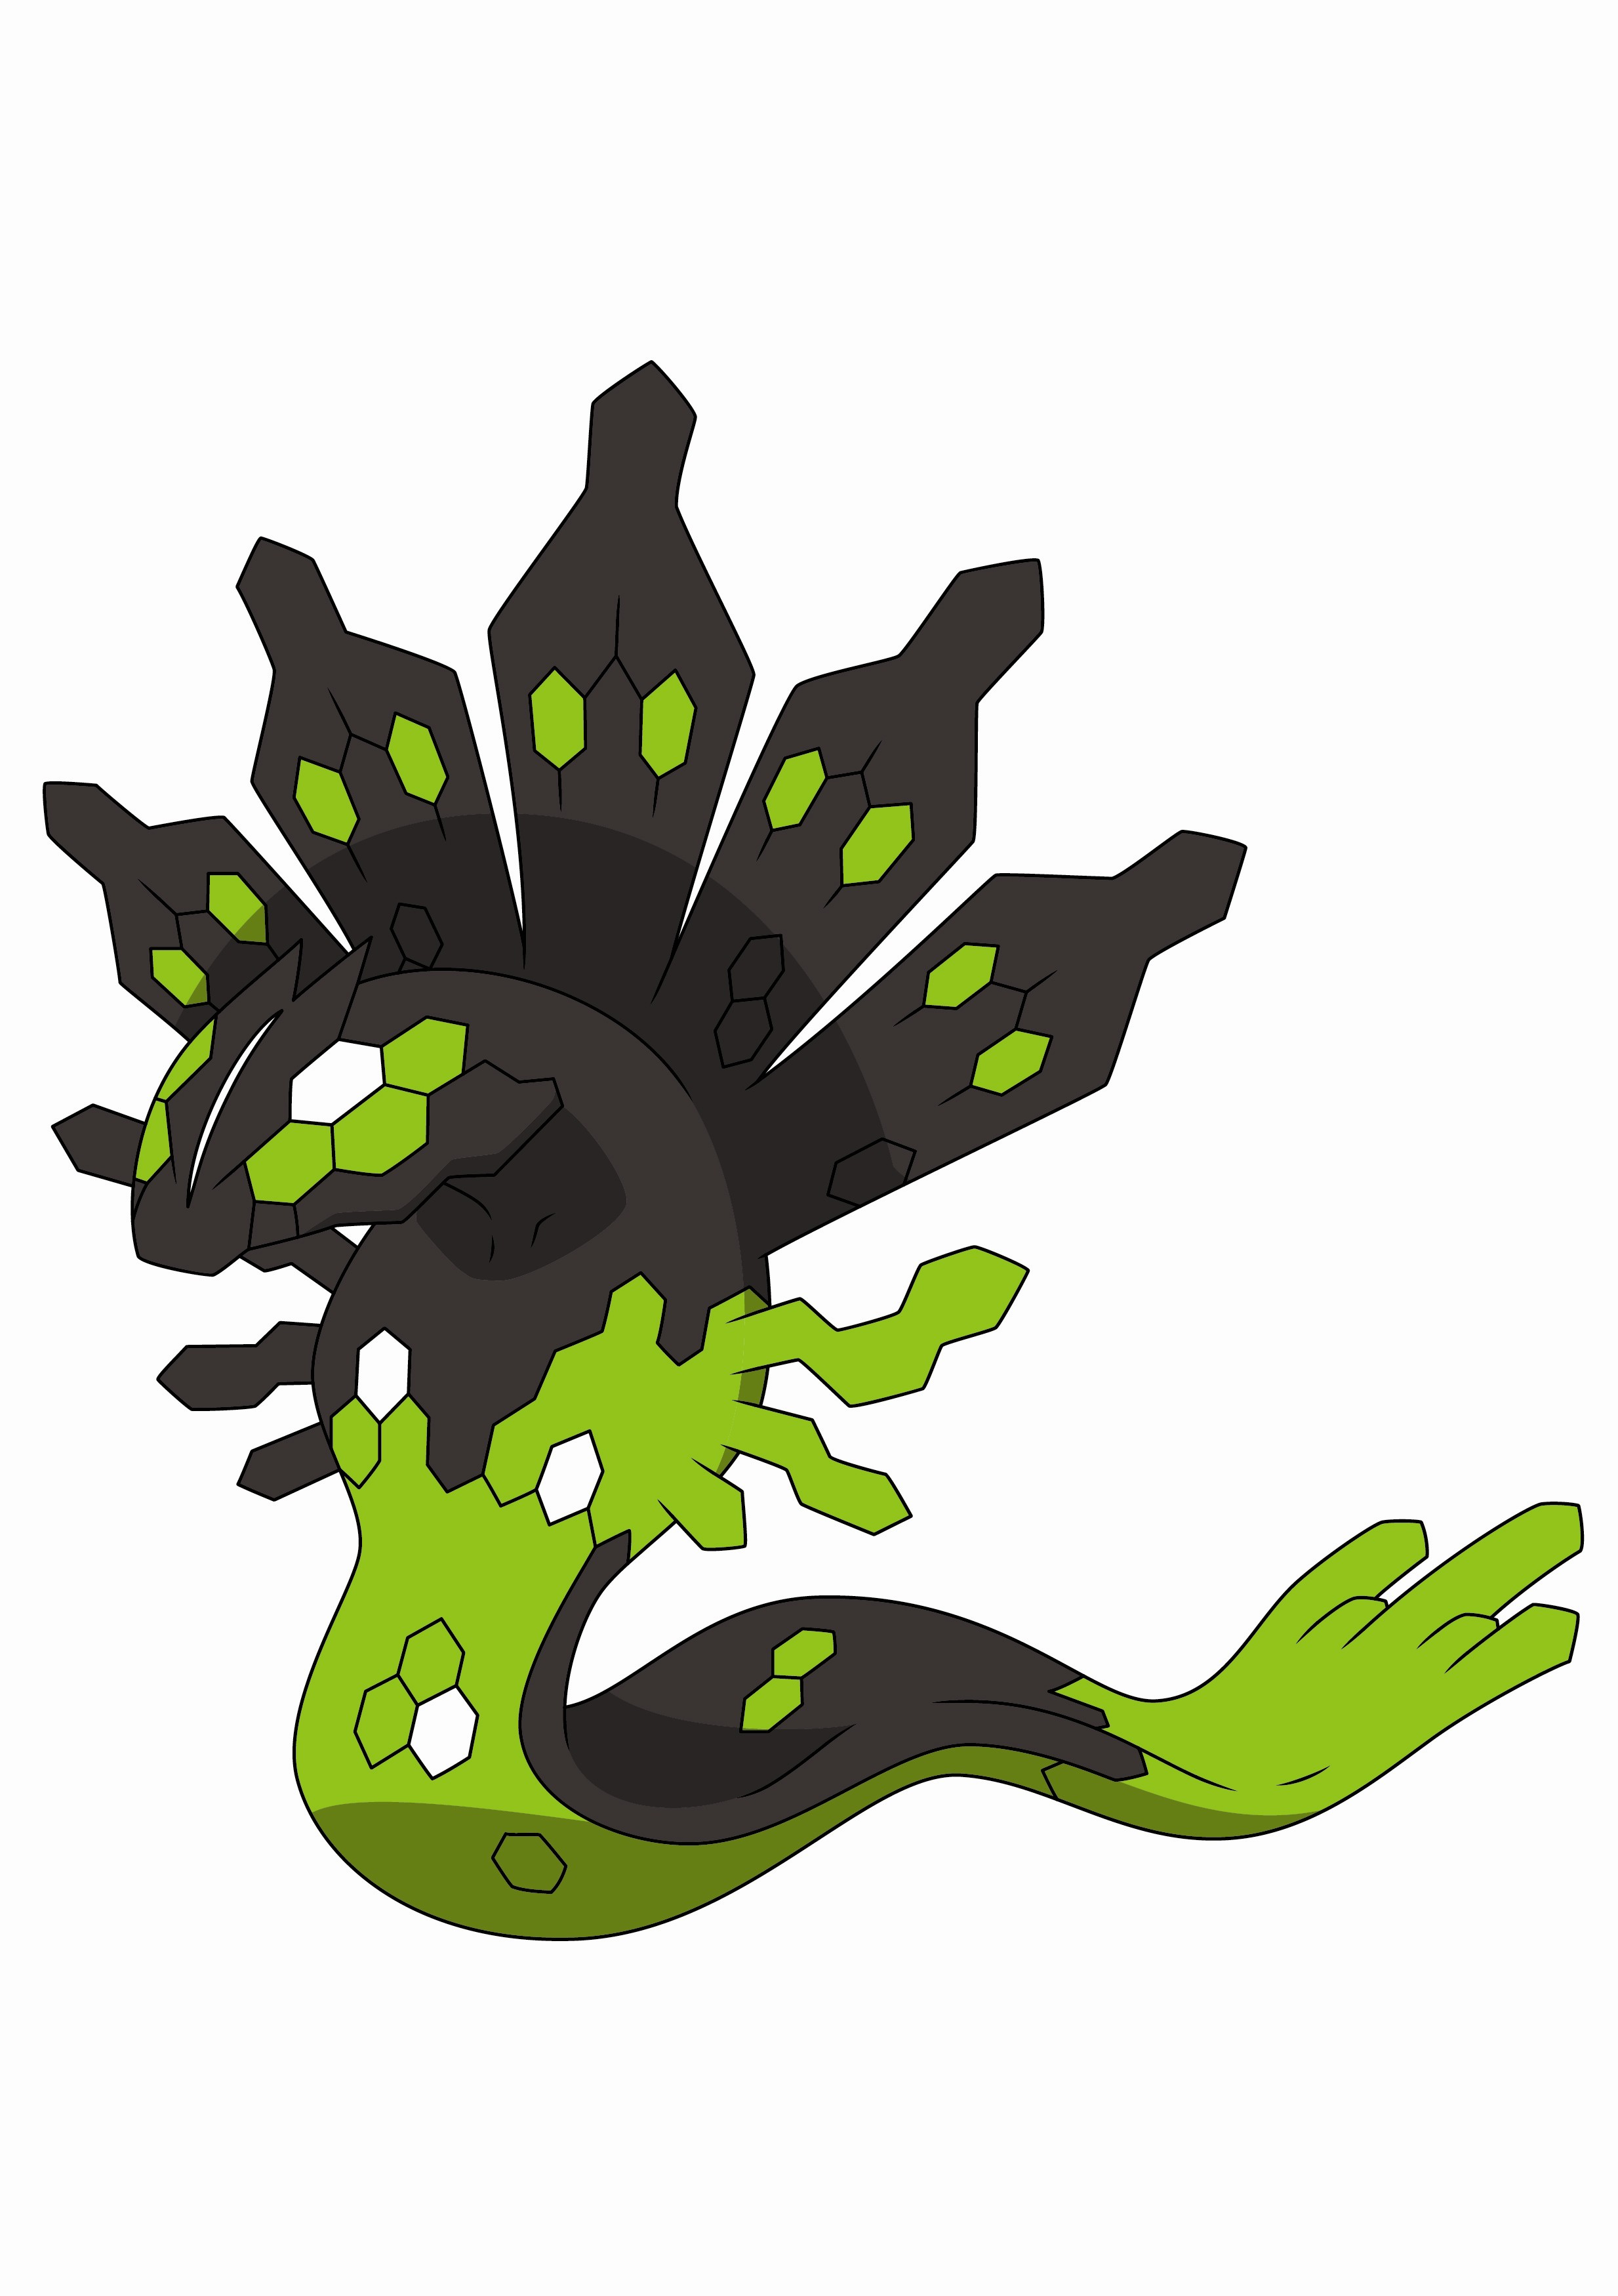 zygarde_50_percento_artwork_ufficiale_hd_pokemontimes-it